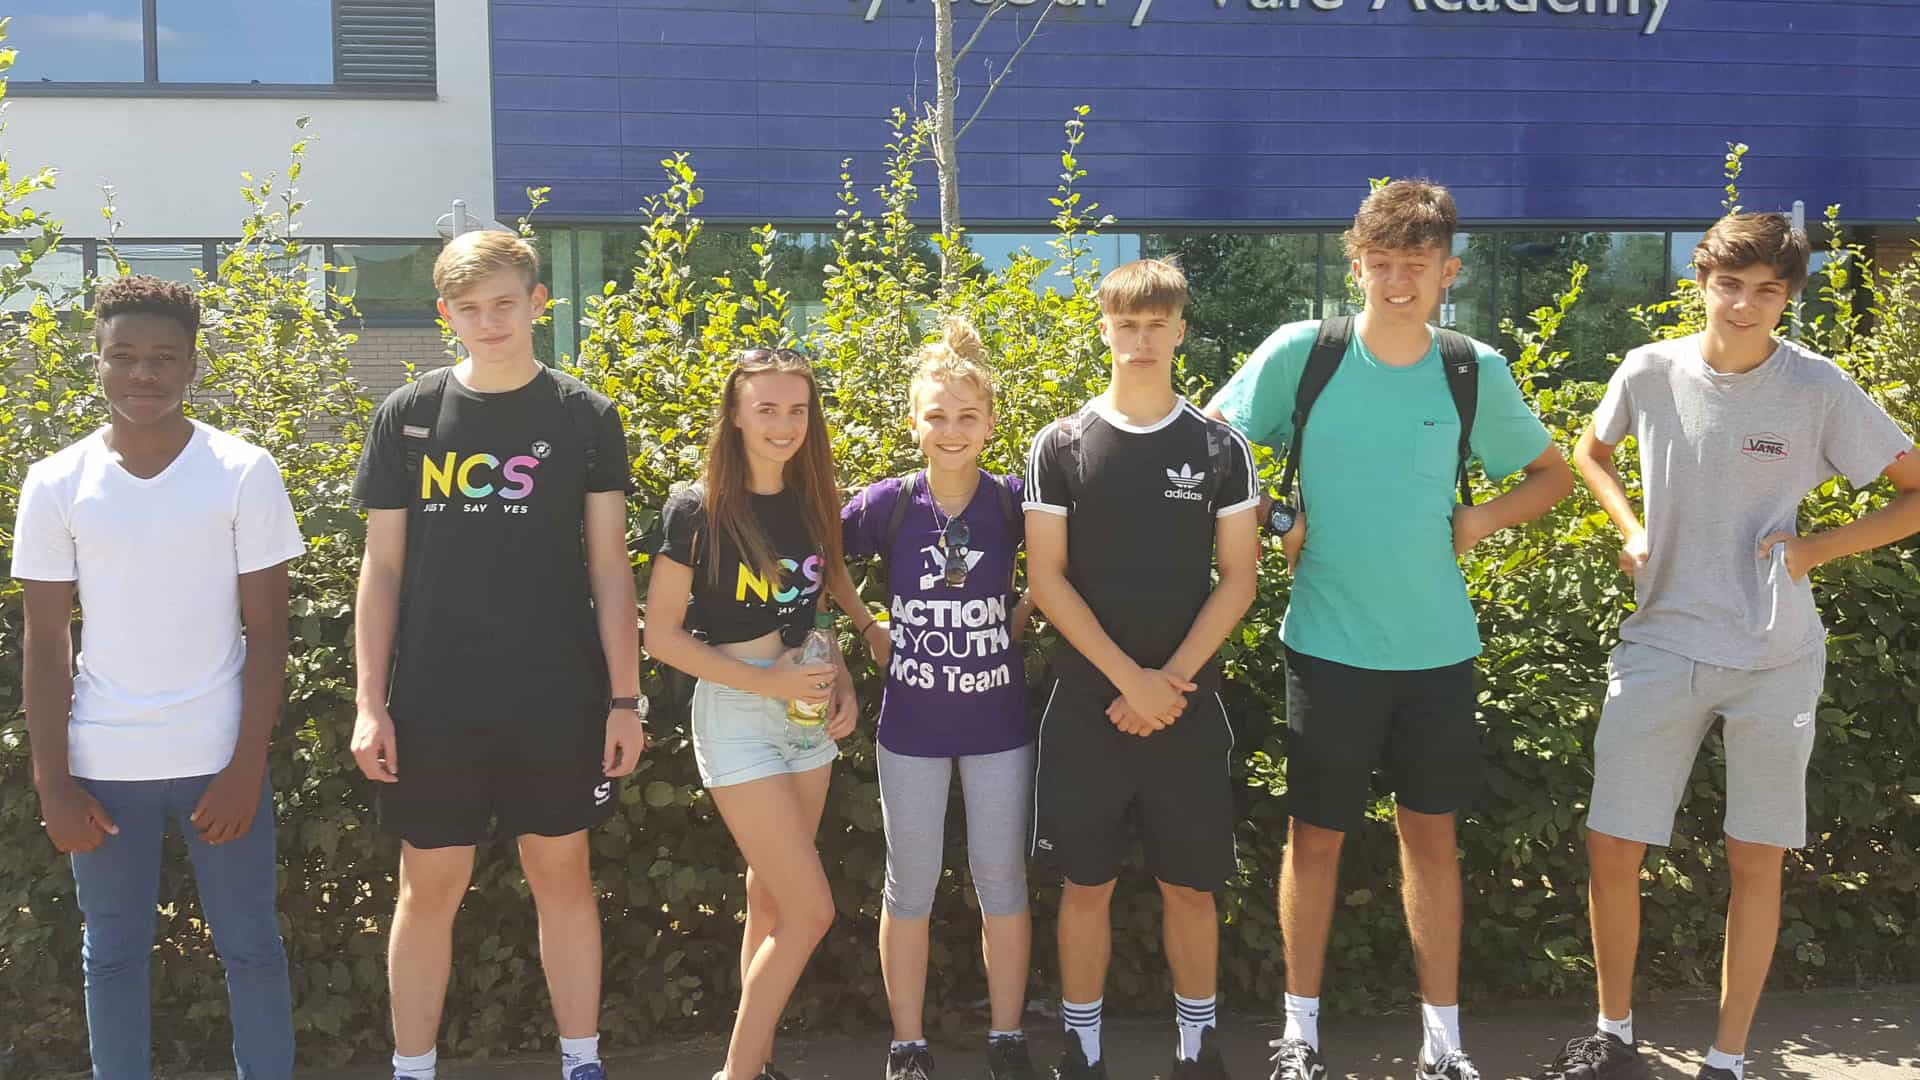 ncs induction events by action4youth